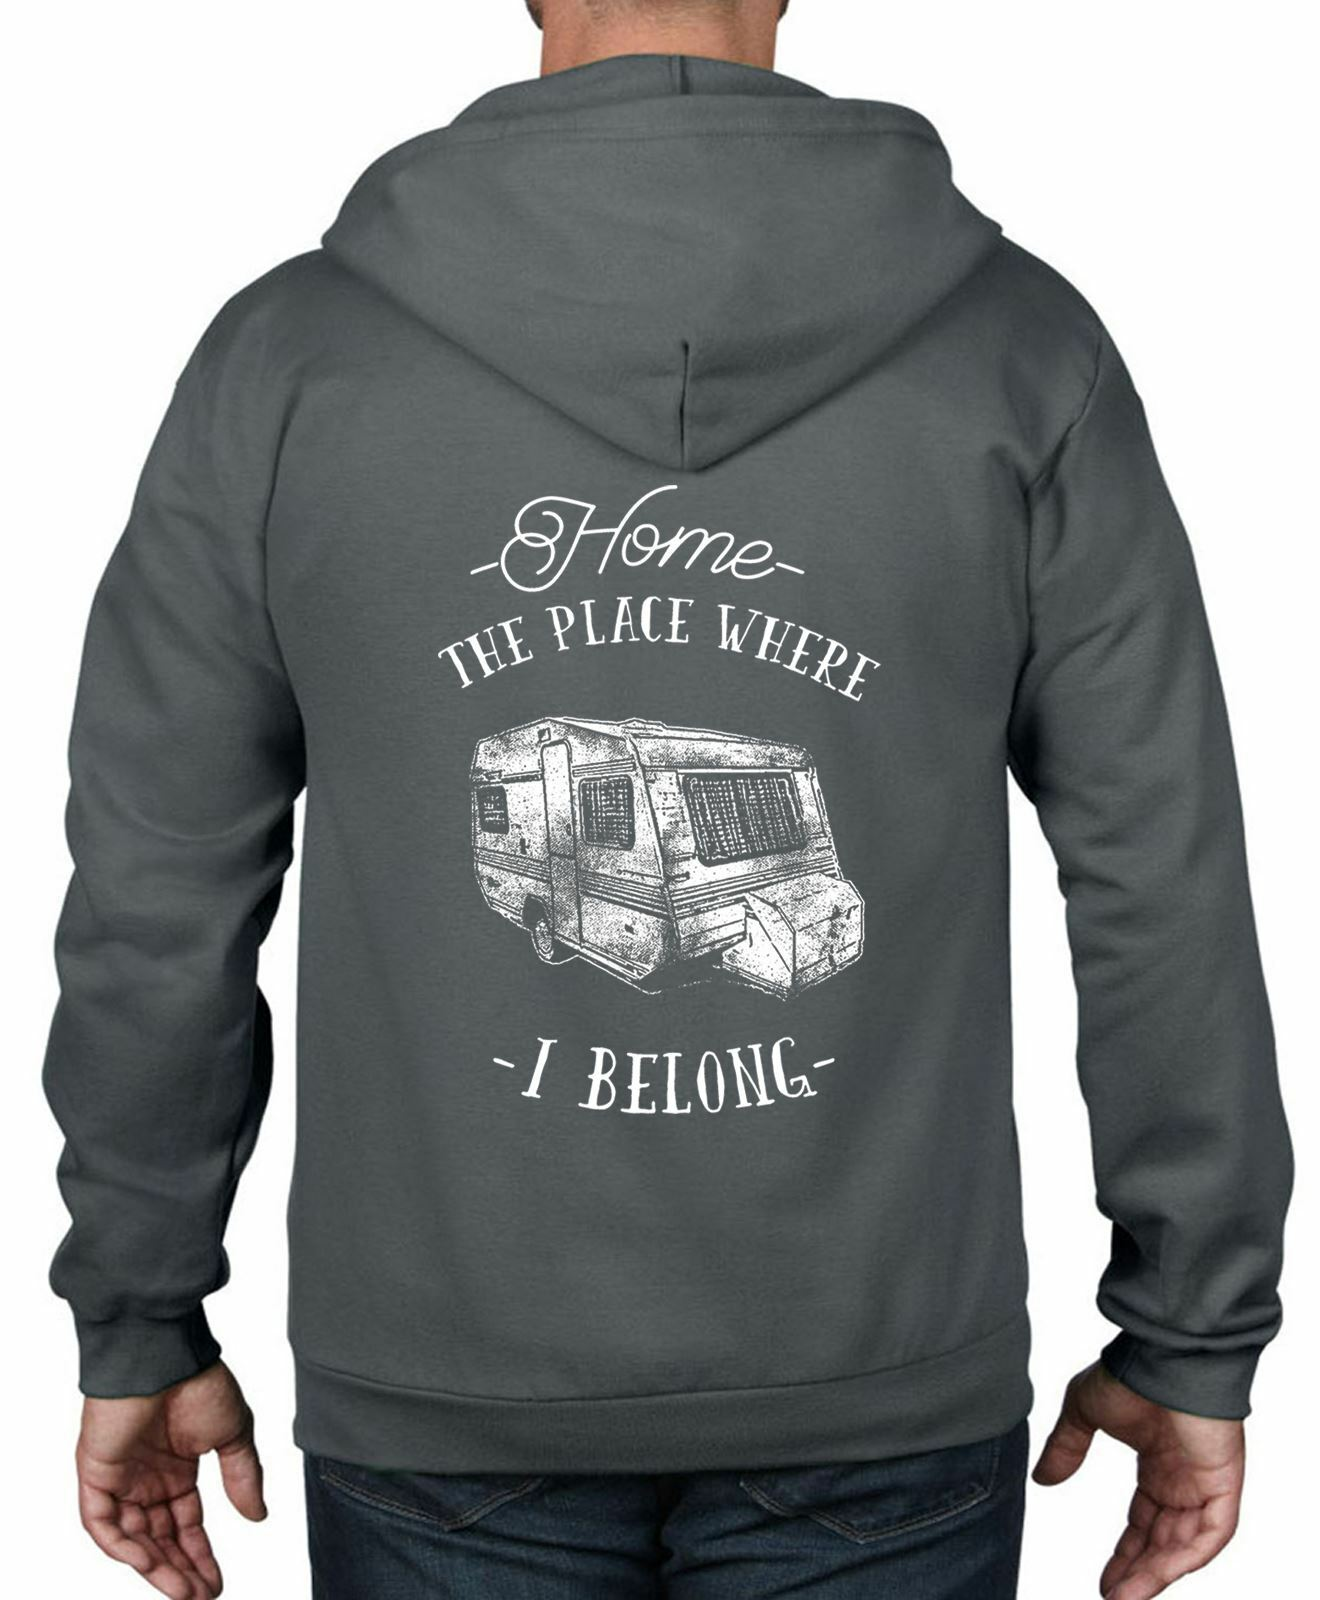 The Place Where I Belong Caravan Camping Full Zip Hoodie - Camper Van